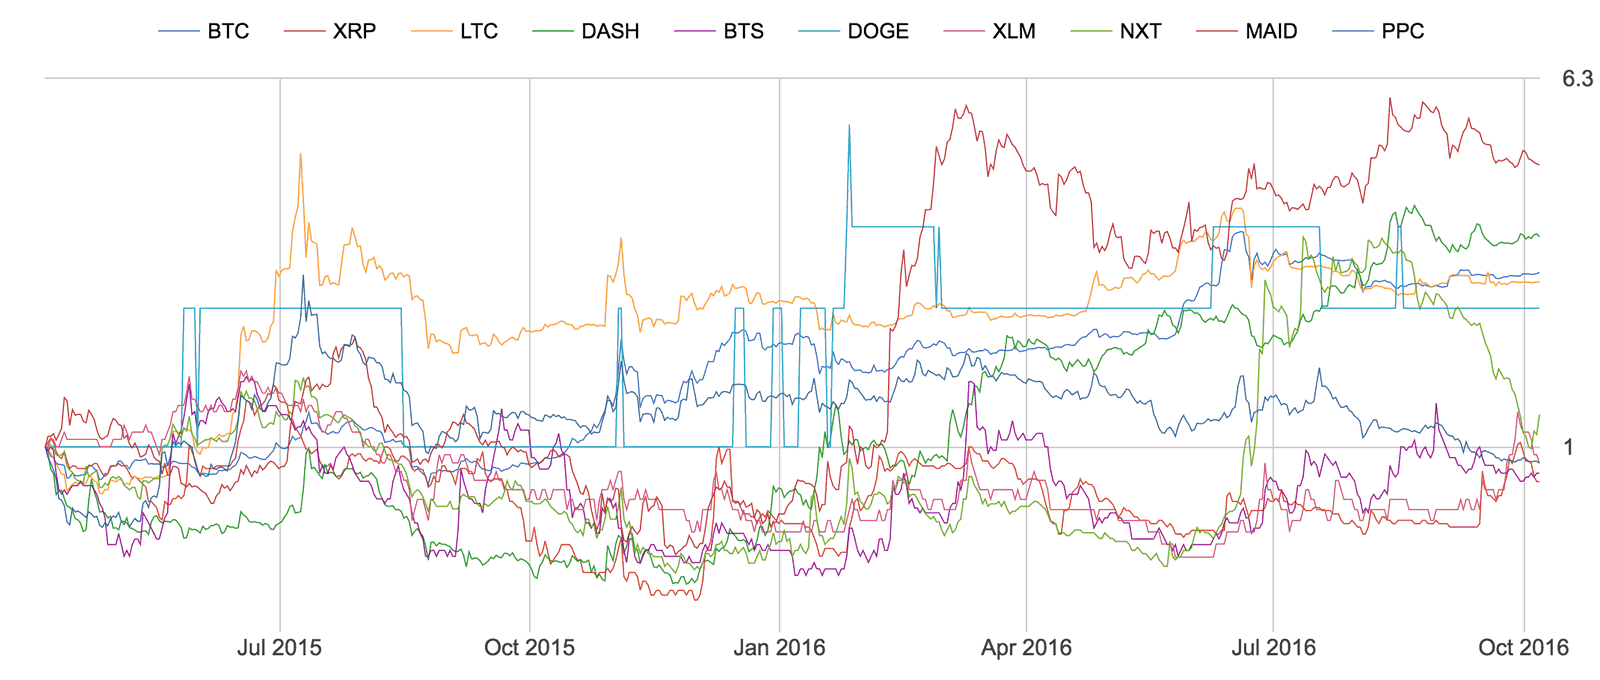 Top 10 coins, returns starting 18 months ago